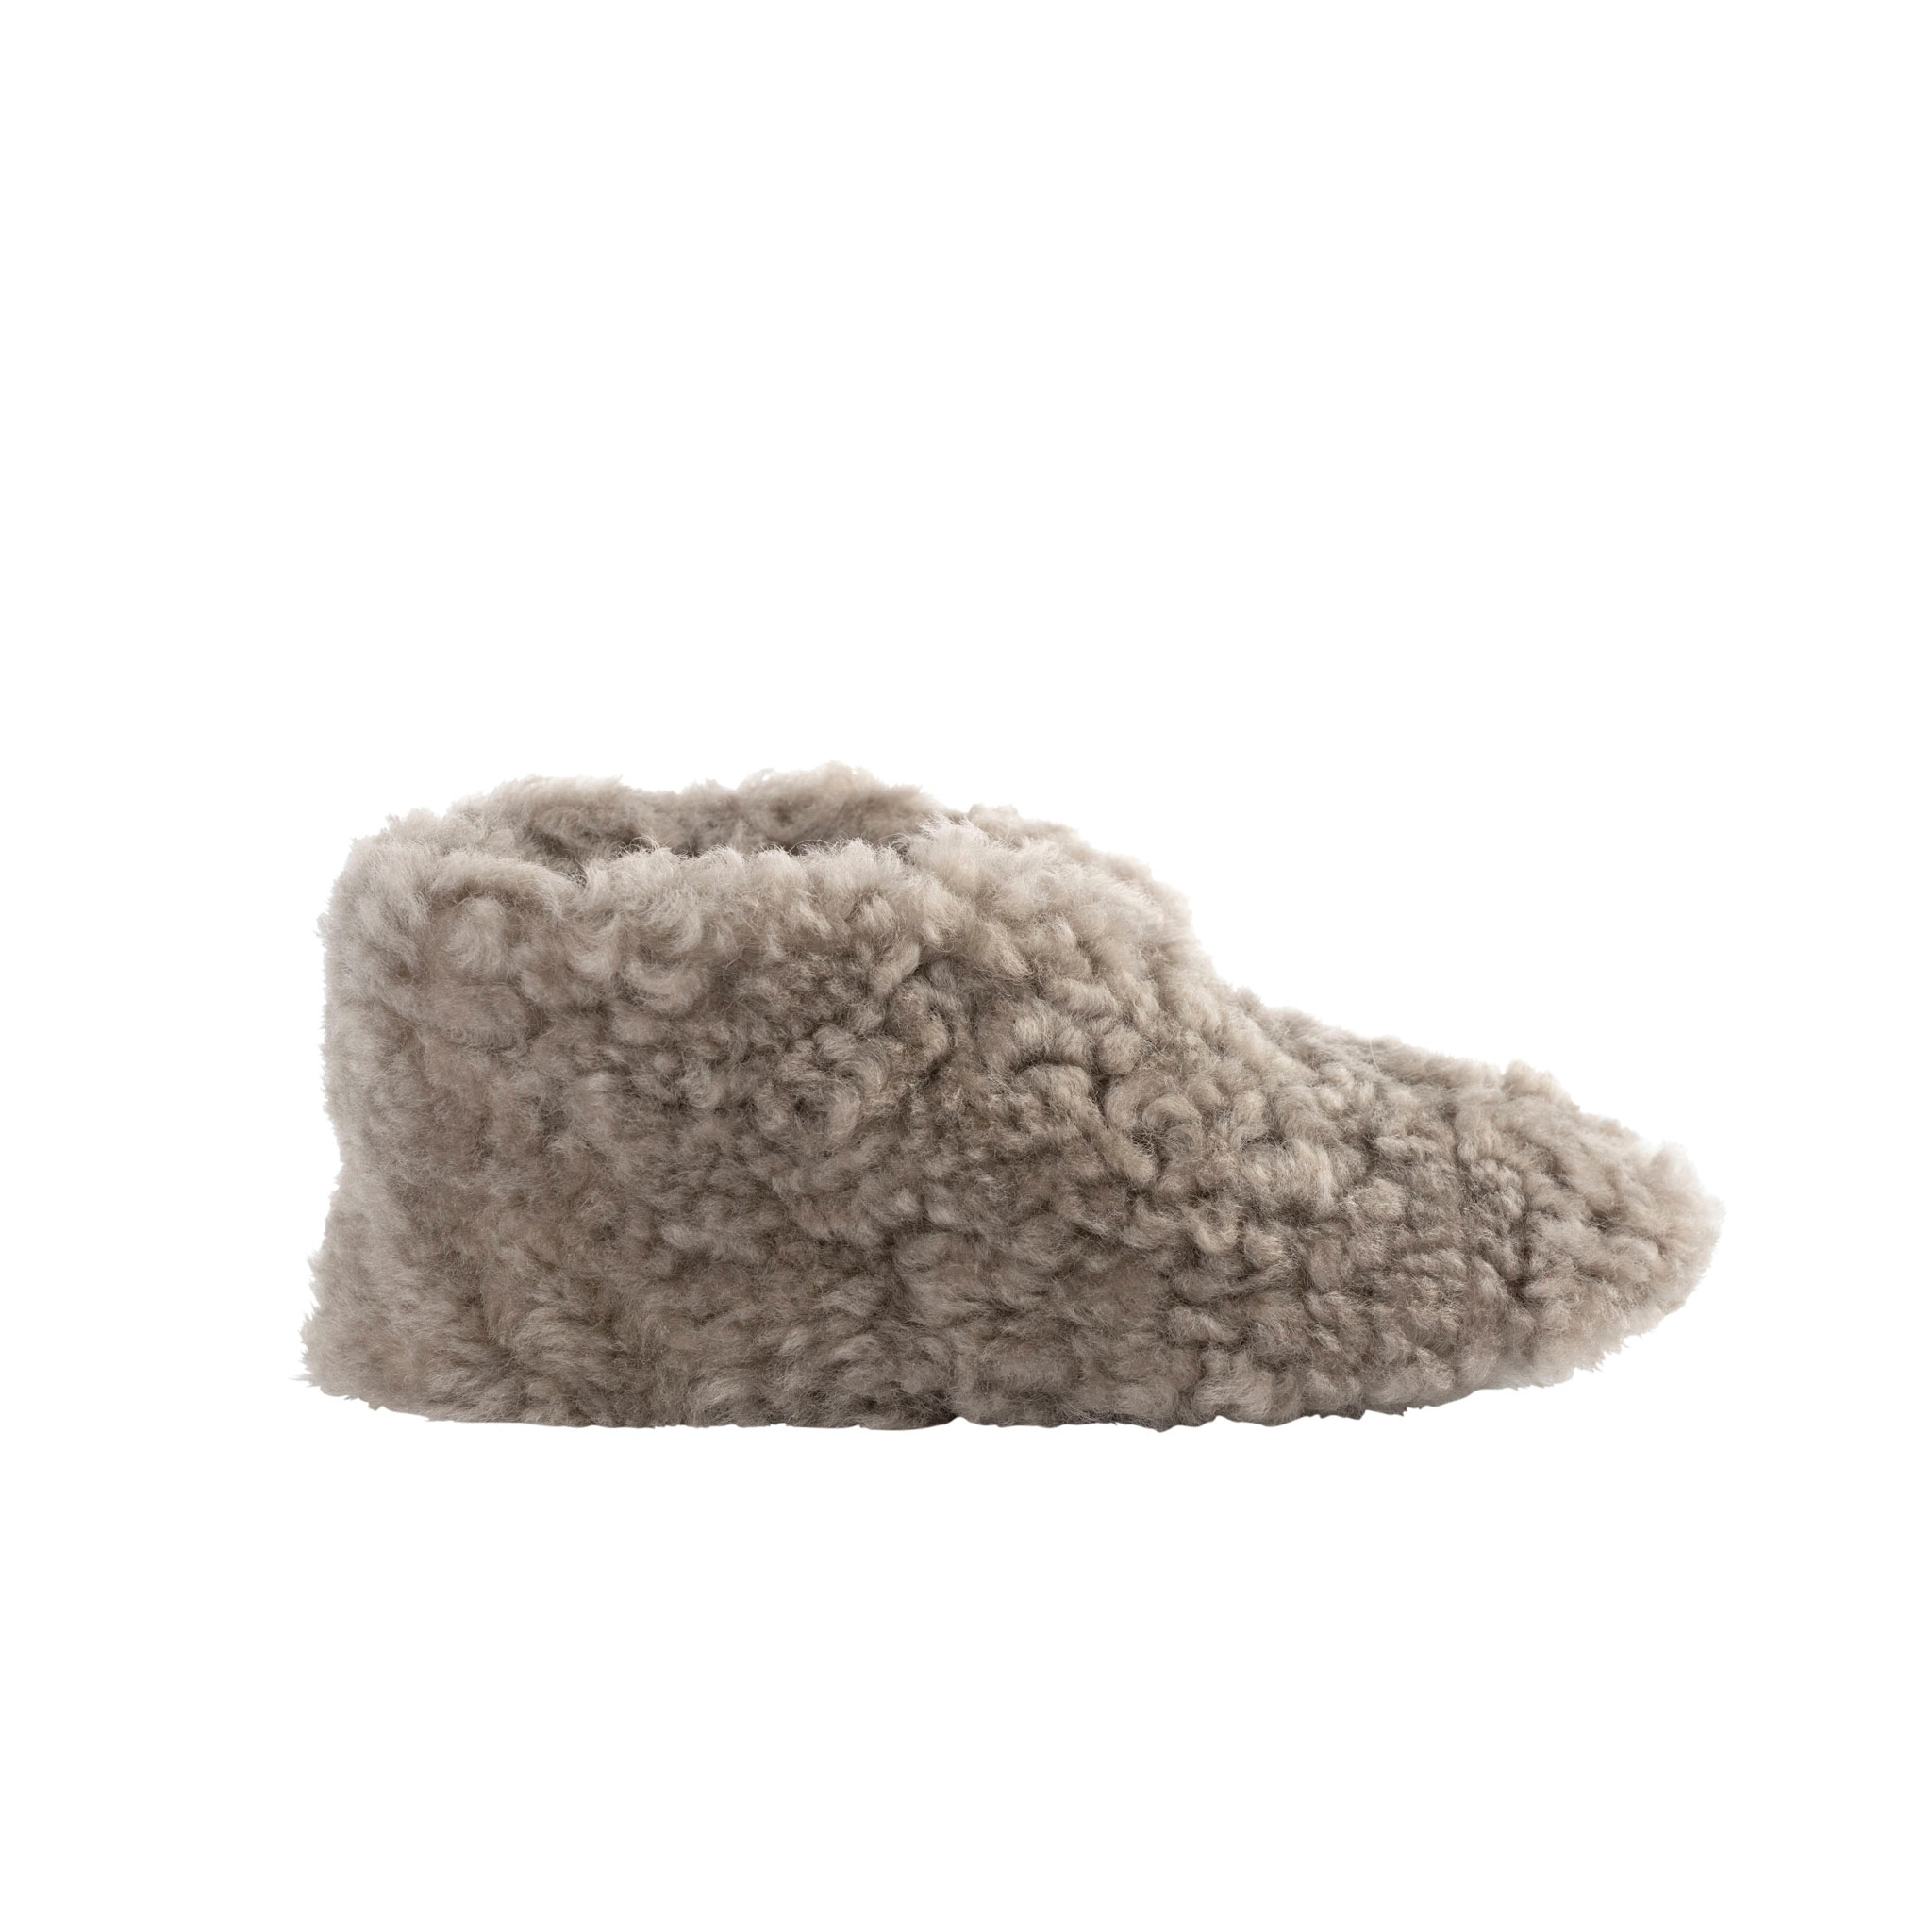 Ulla slippers